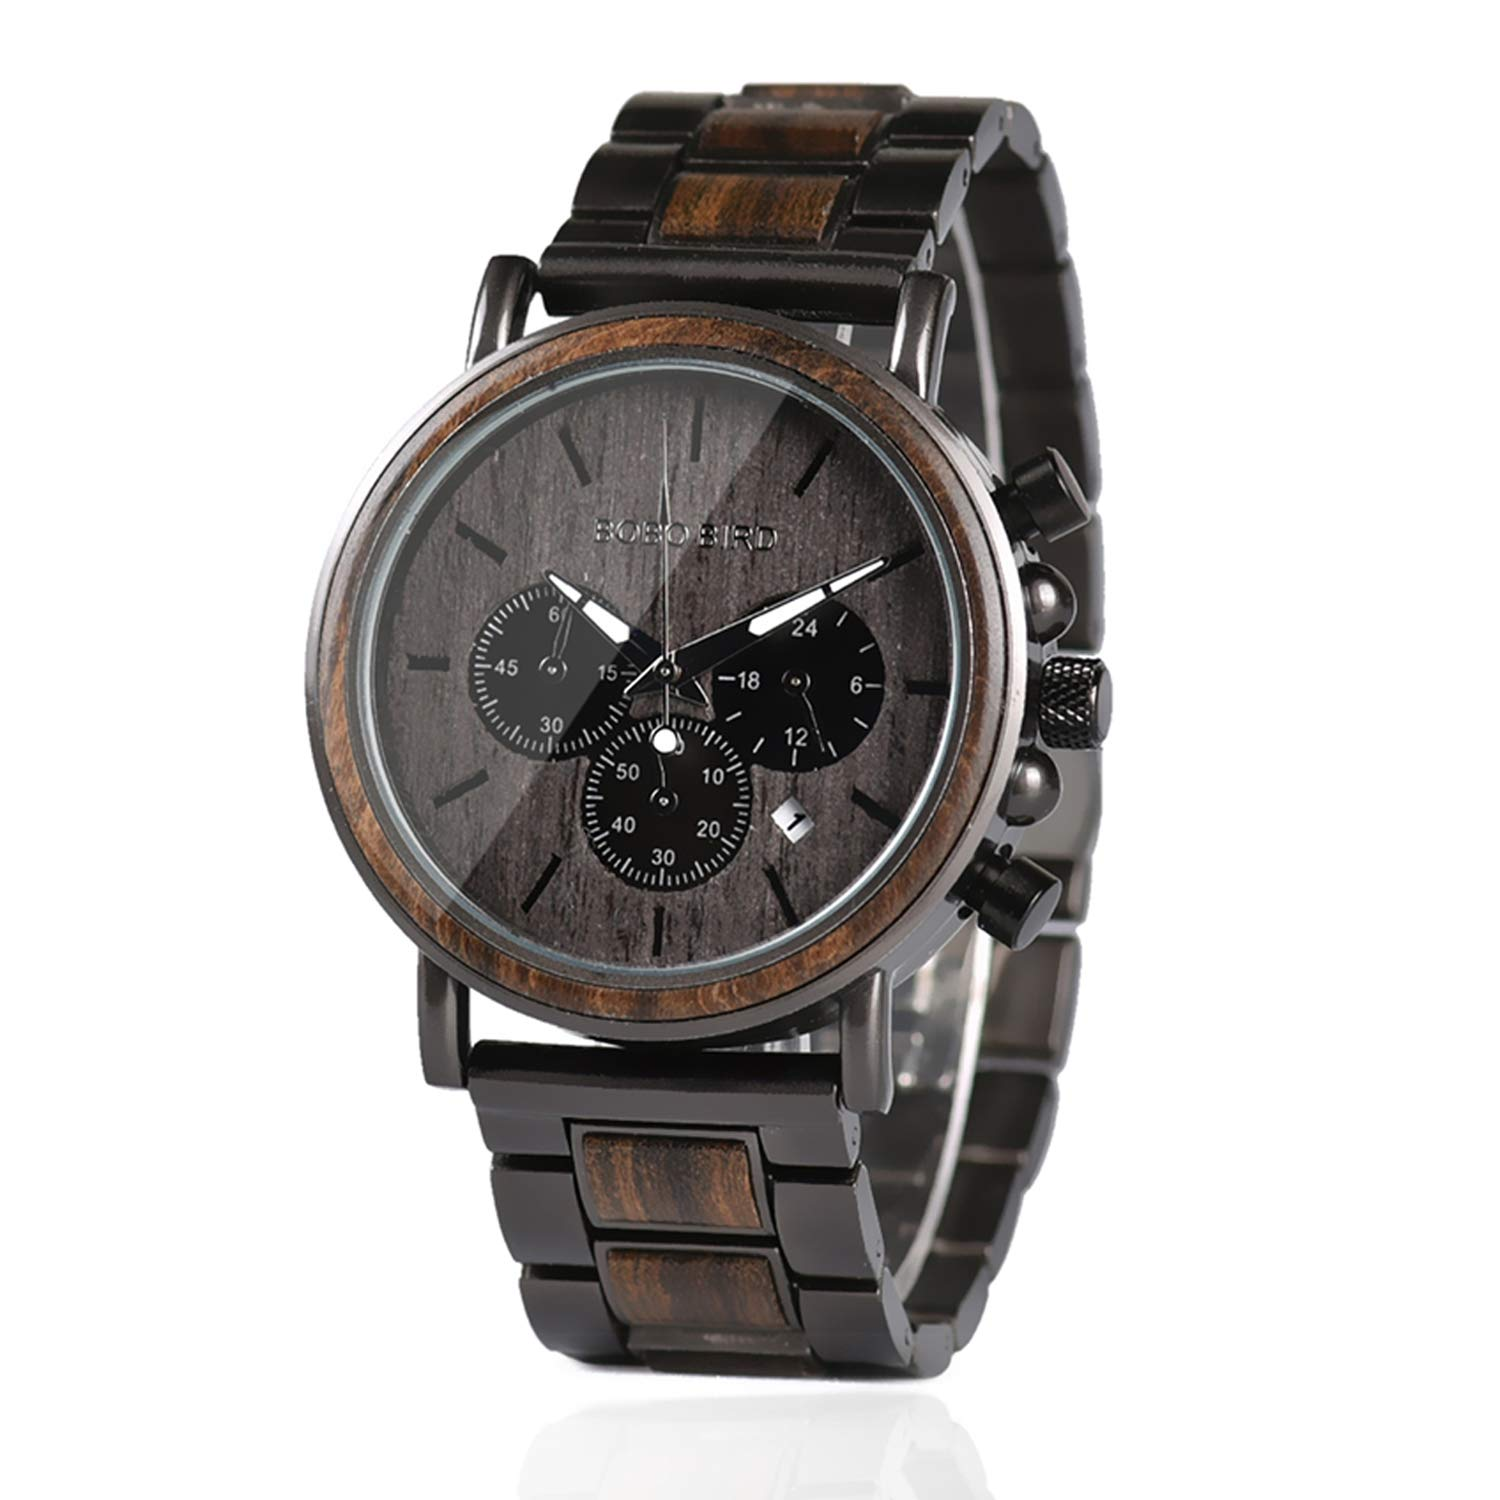 Mens Wooden Watches Business Casual Wristwatches Stylish Ebony Wood & Stainless Steel Combined Chronograph with Wooden Box (Grey)